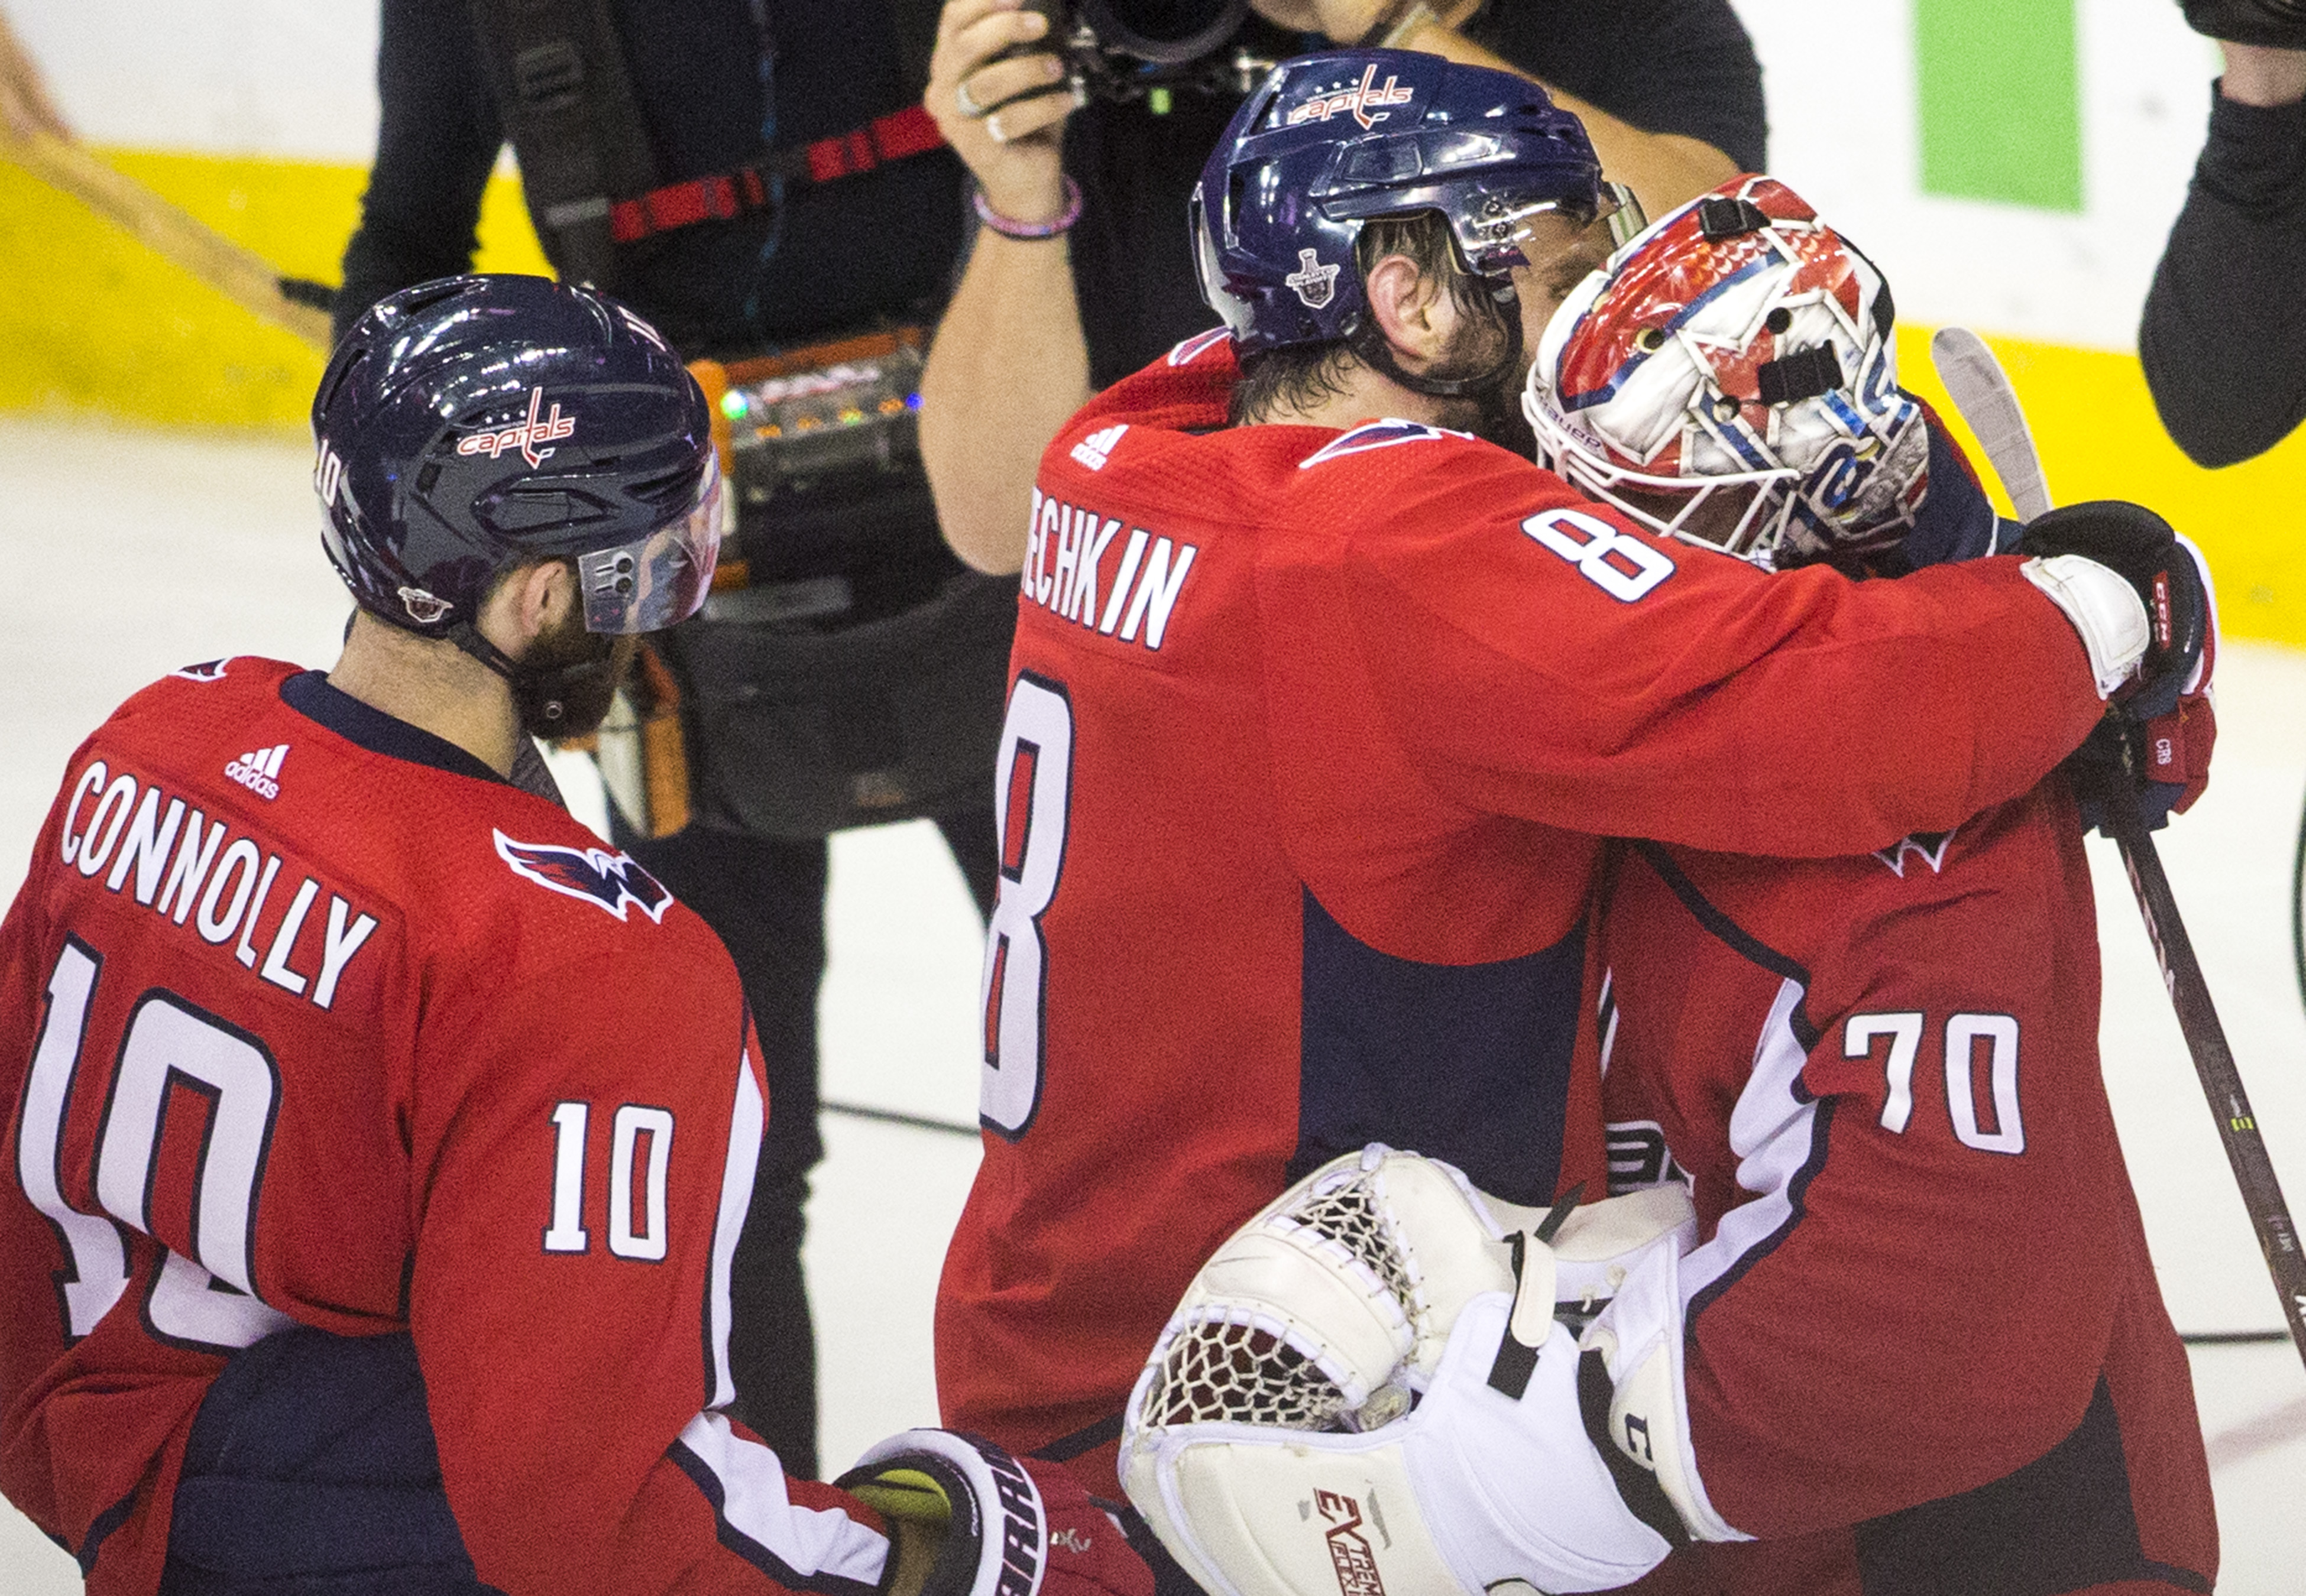 NHL: MAY 21 Stanley Cup Playoffs Eastern Conference Finals Game 6 - Lightning at Capitals